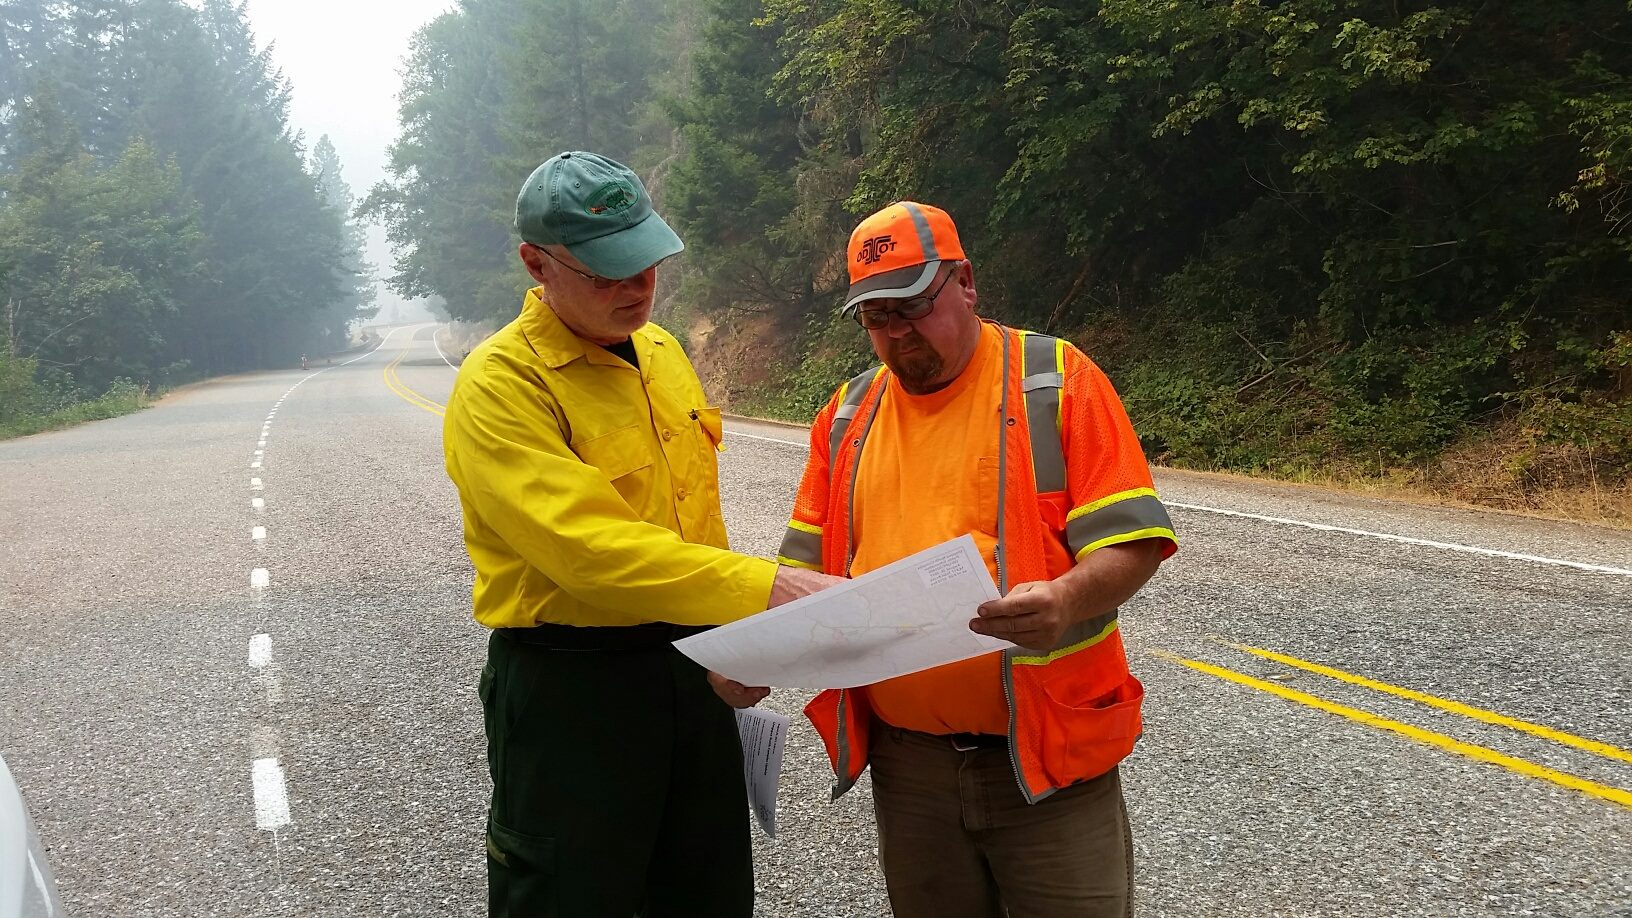 Public Information Officer Dee Hines explains a closure map to an ODOT employee on Highway 138, east of Glide. (Photo courtesy US Forest Service-Umpqua National Forest)